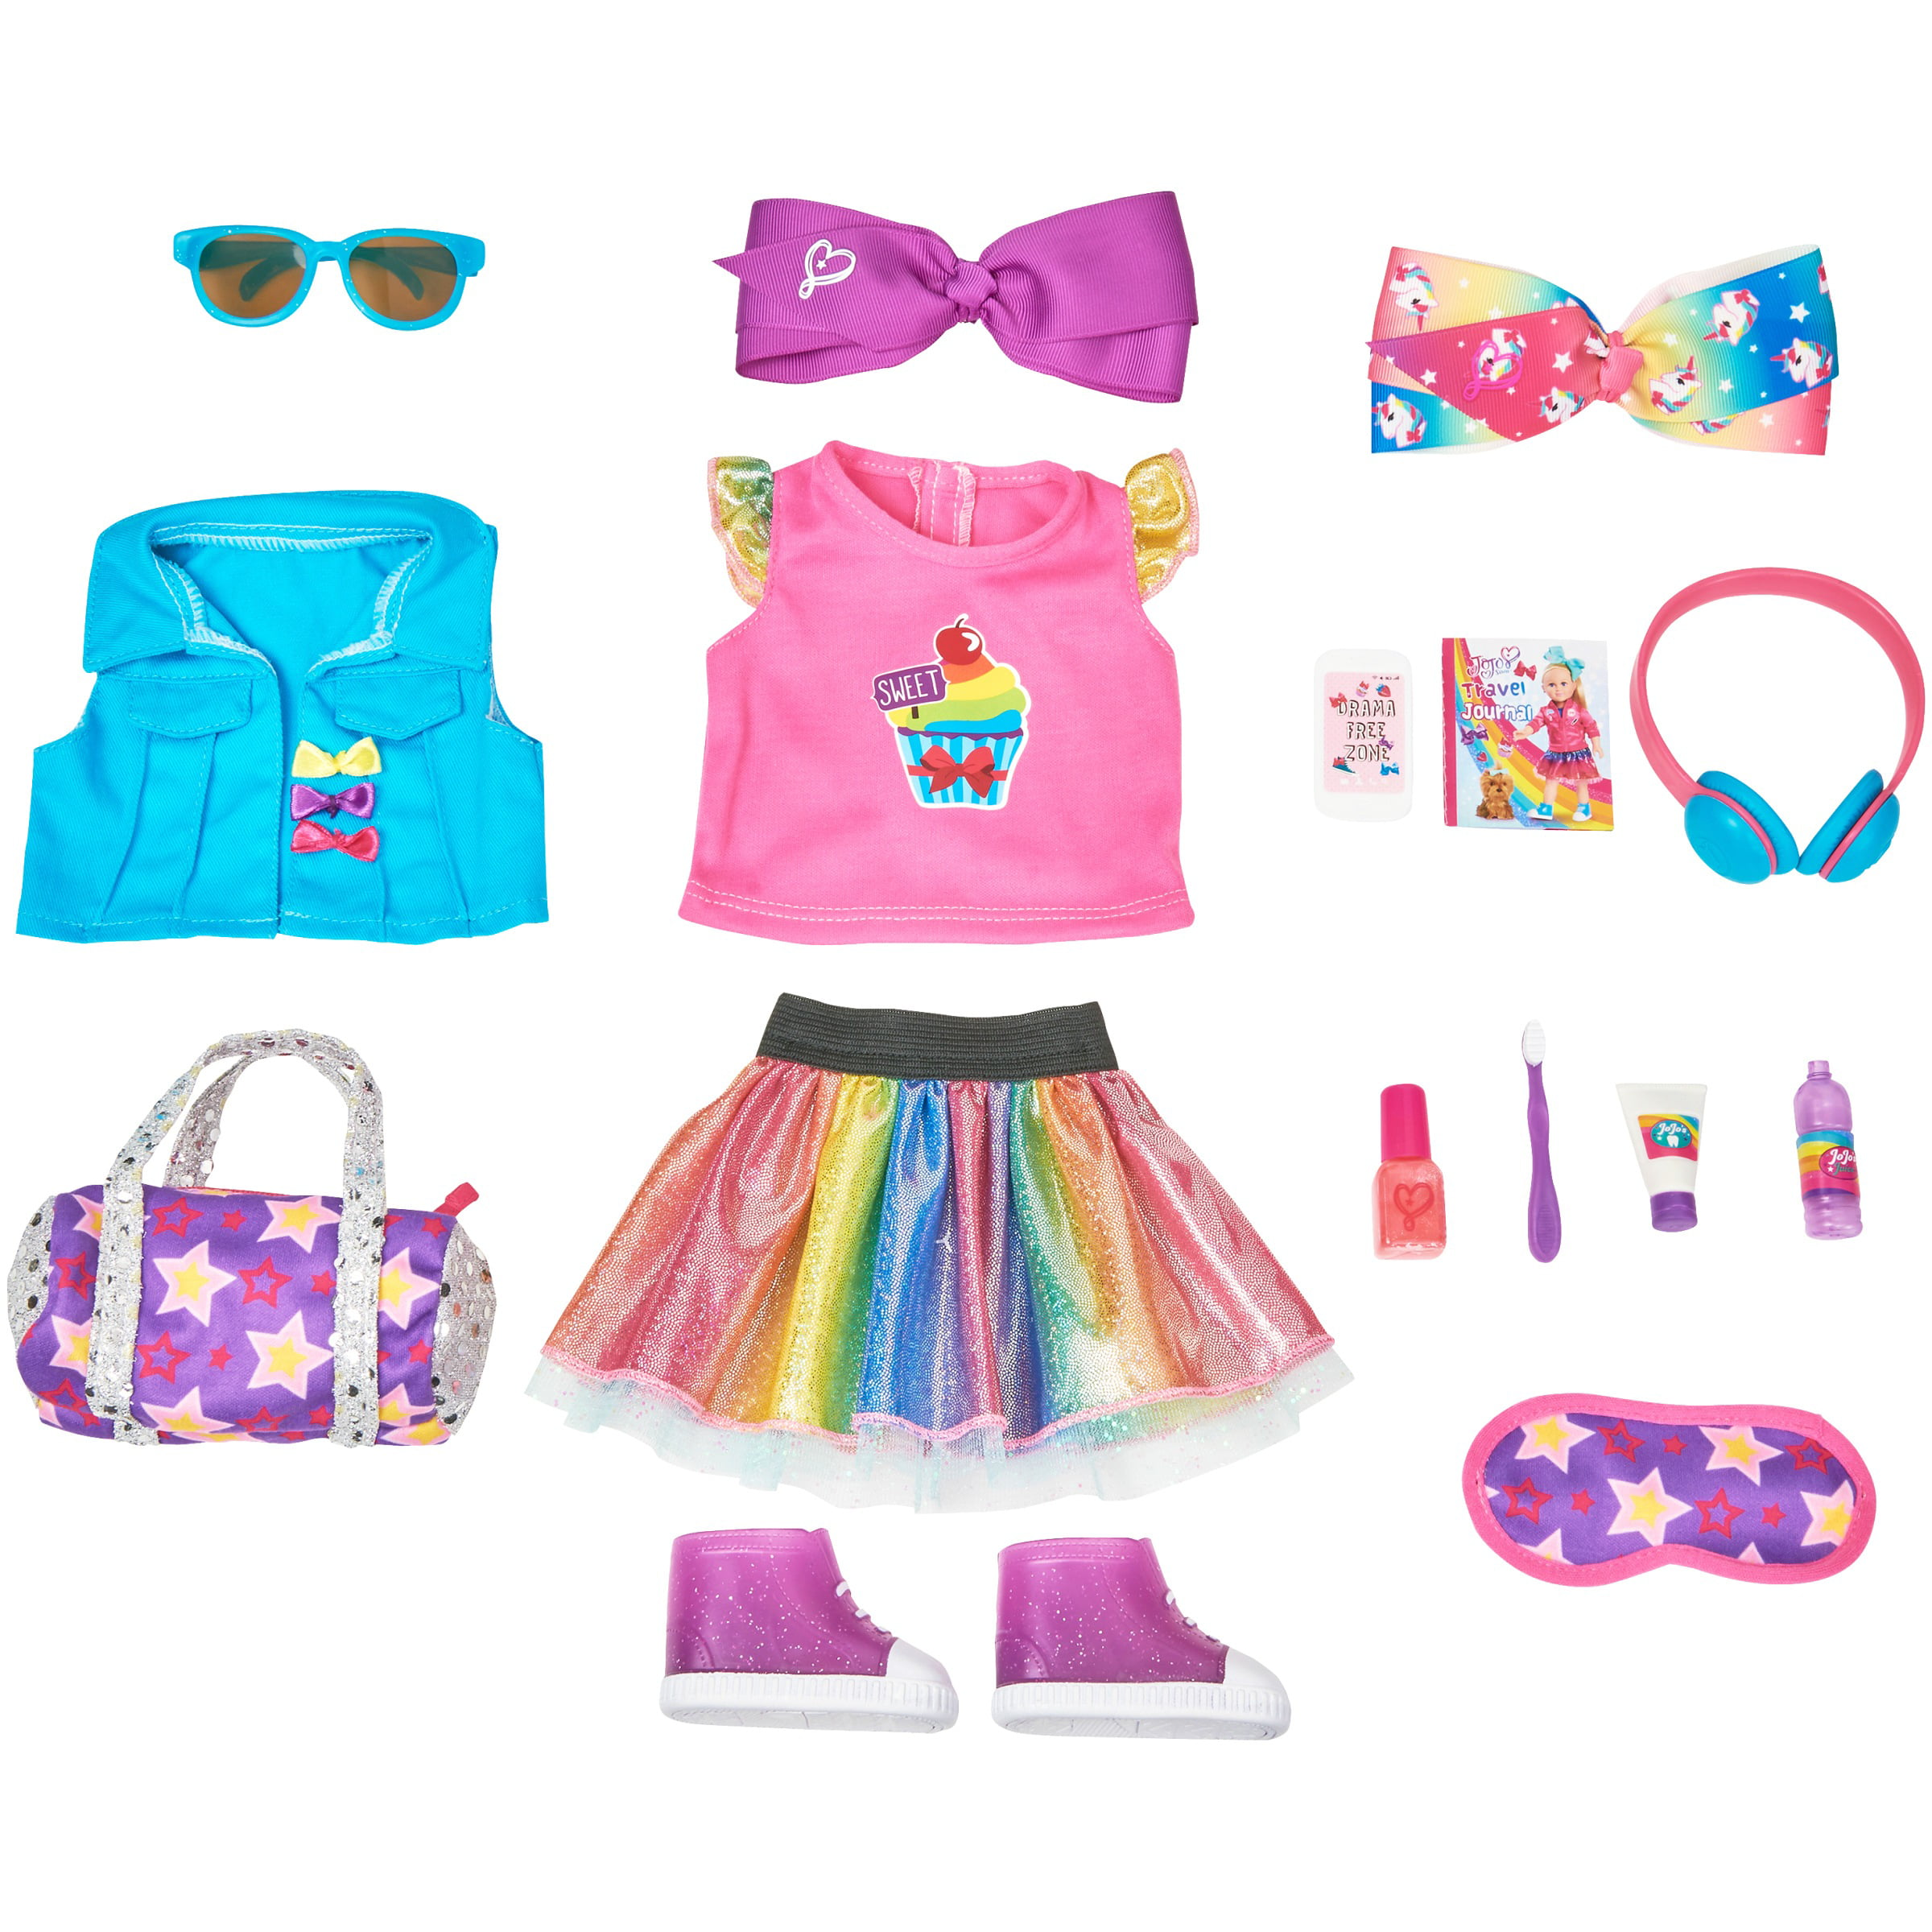 My Life As JoJo Siwa 15-Piece Travel Set, Designed for Ages 5 and Up